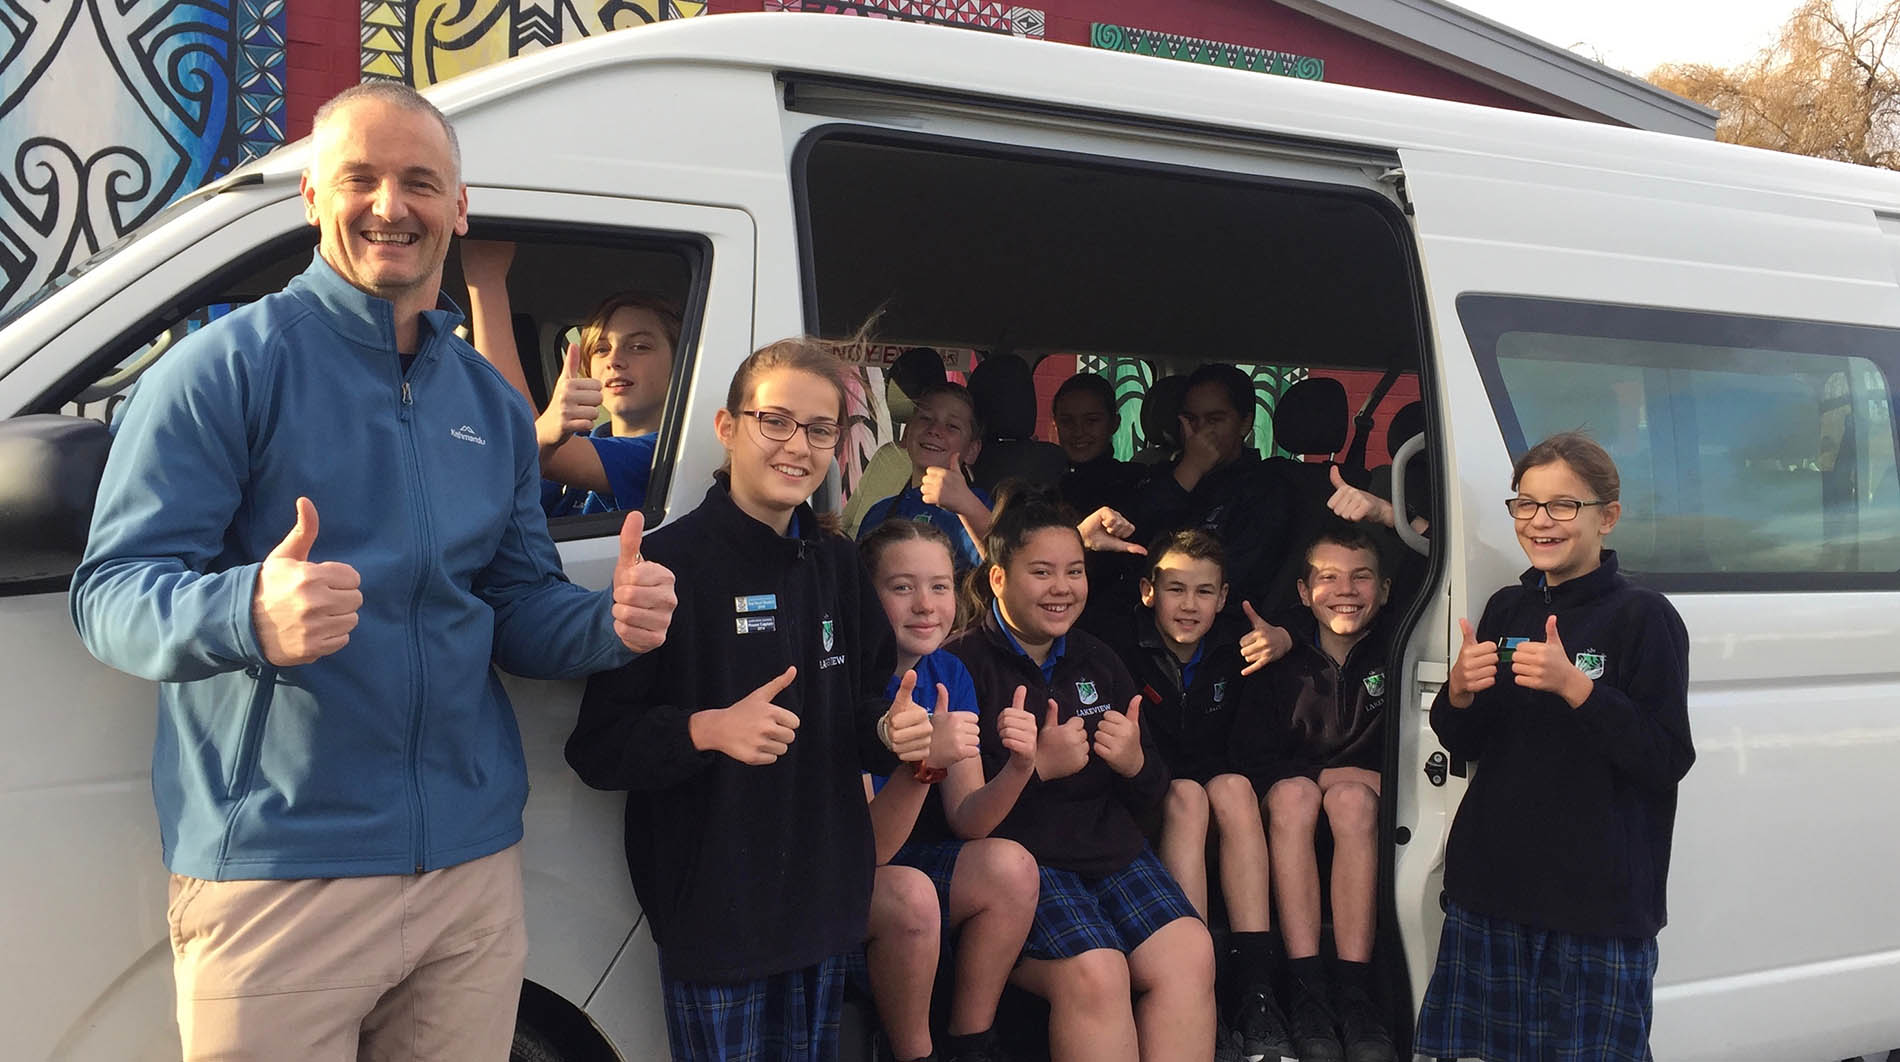 Lakeview School students, and principal Tim Nelson, give the thumbs up for their brand new Toyota van.